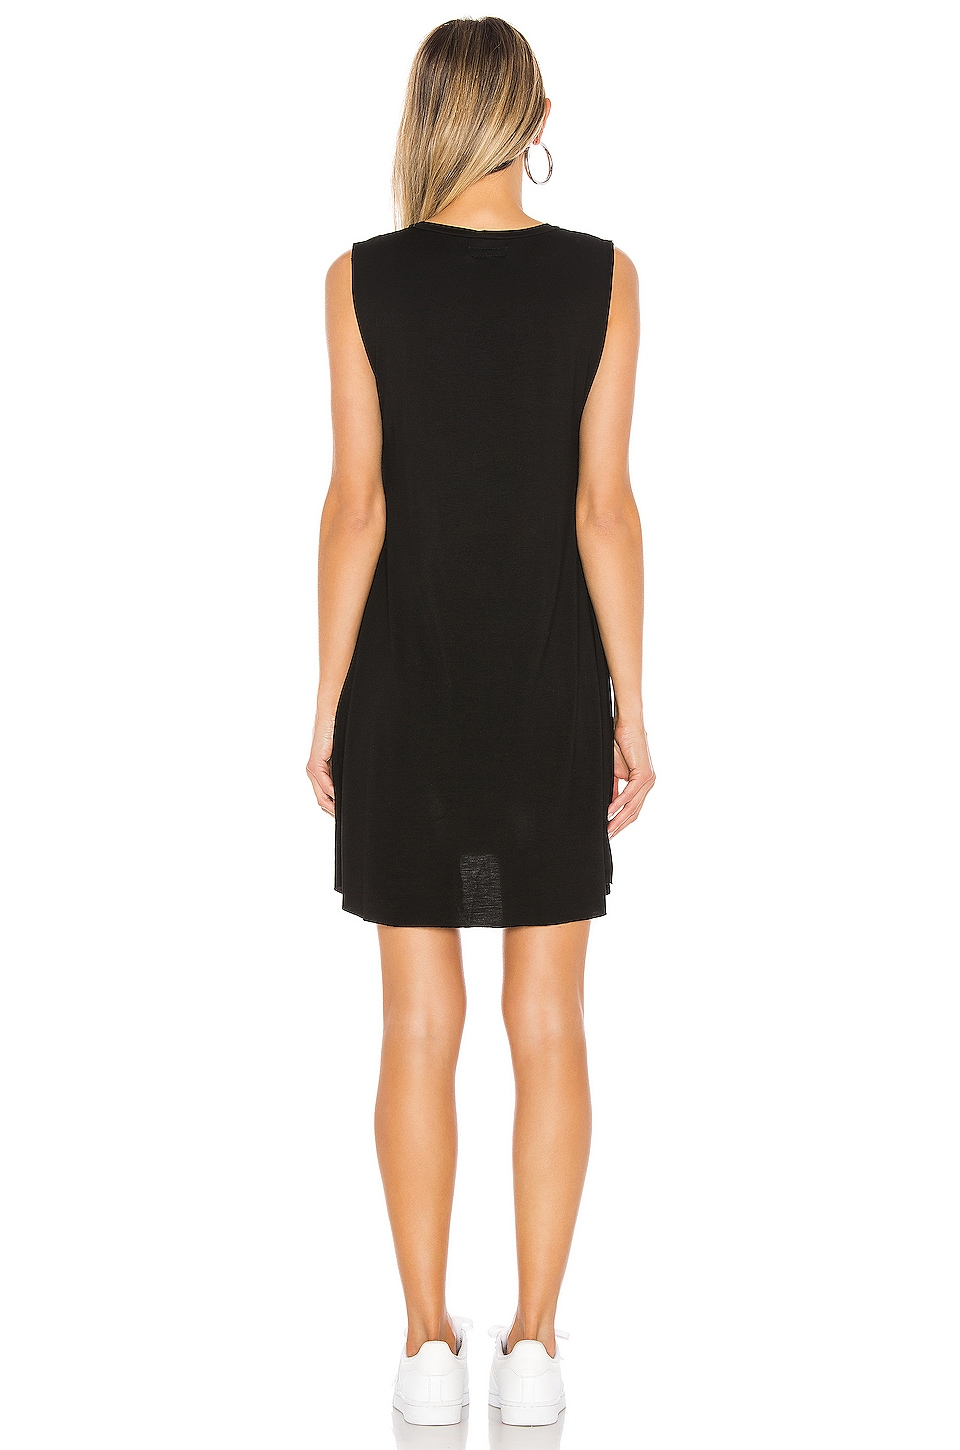 Gilly Sleeveless Dress, view 3, click to view large image.